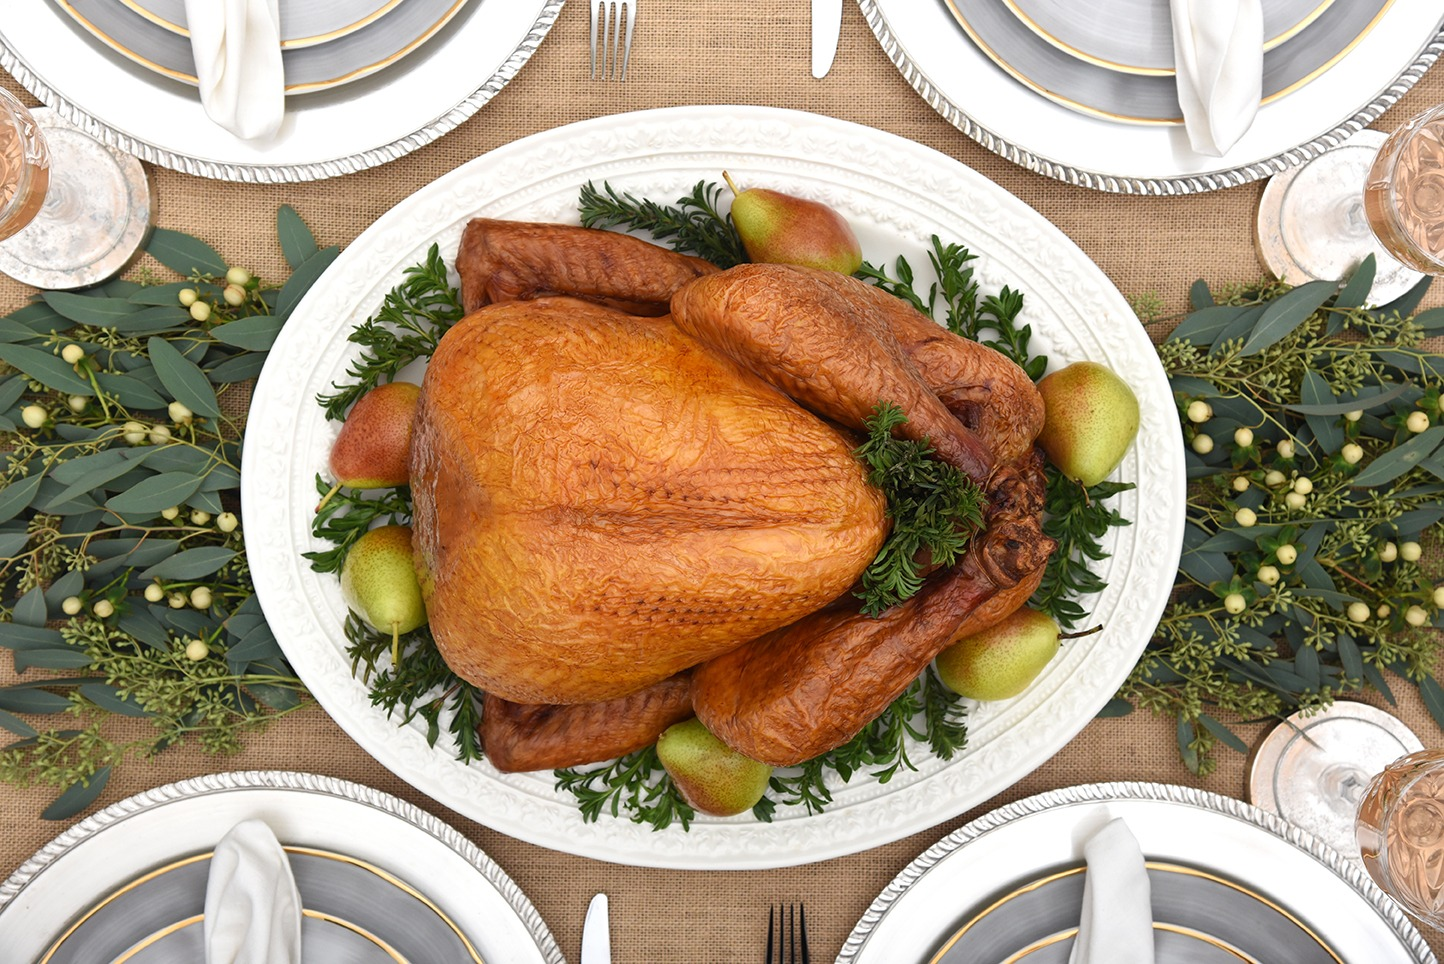 8 Ways To Make Turkey The Star Of Your Holiday Season